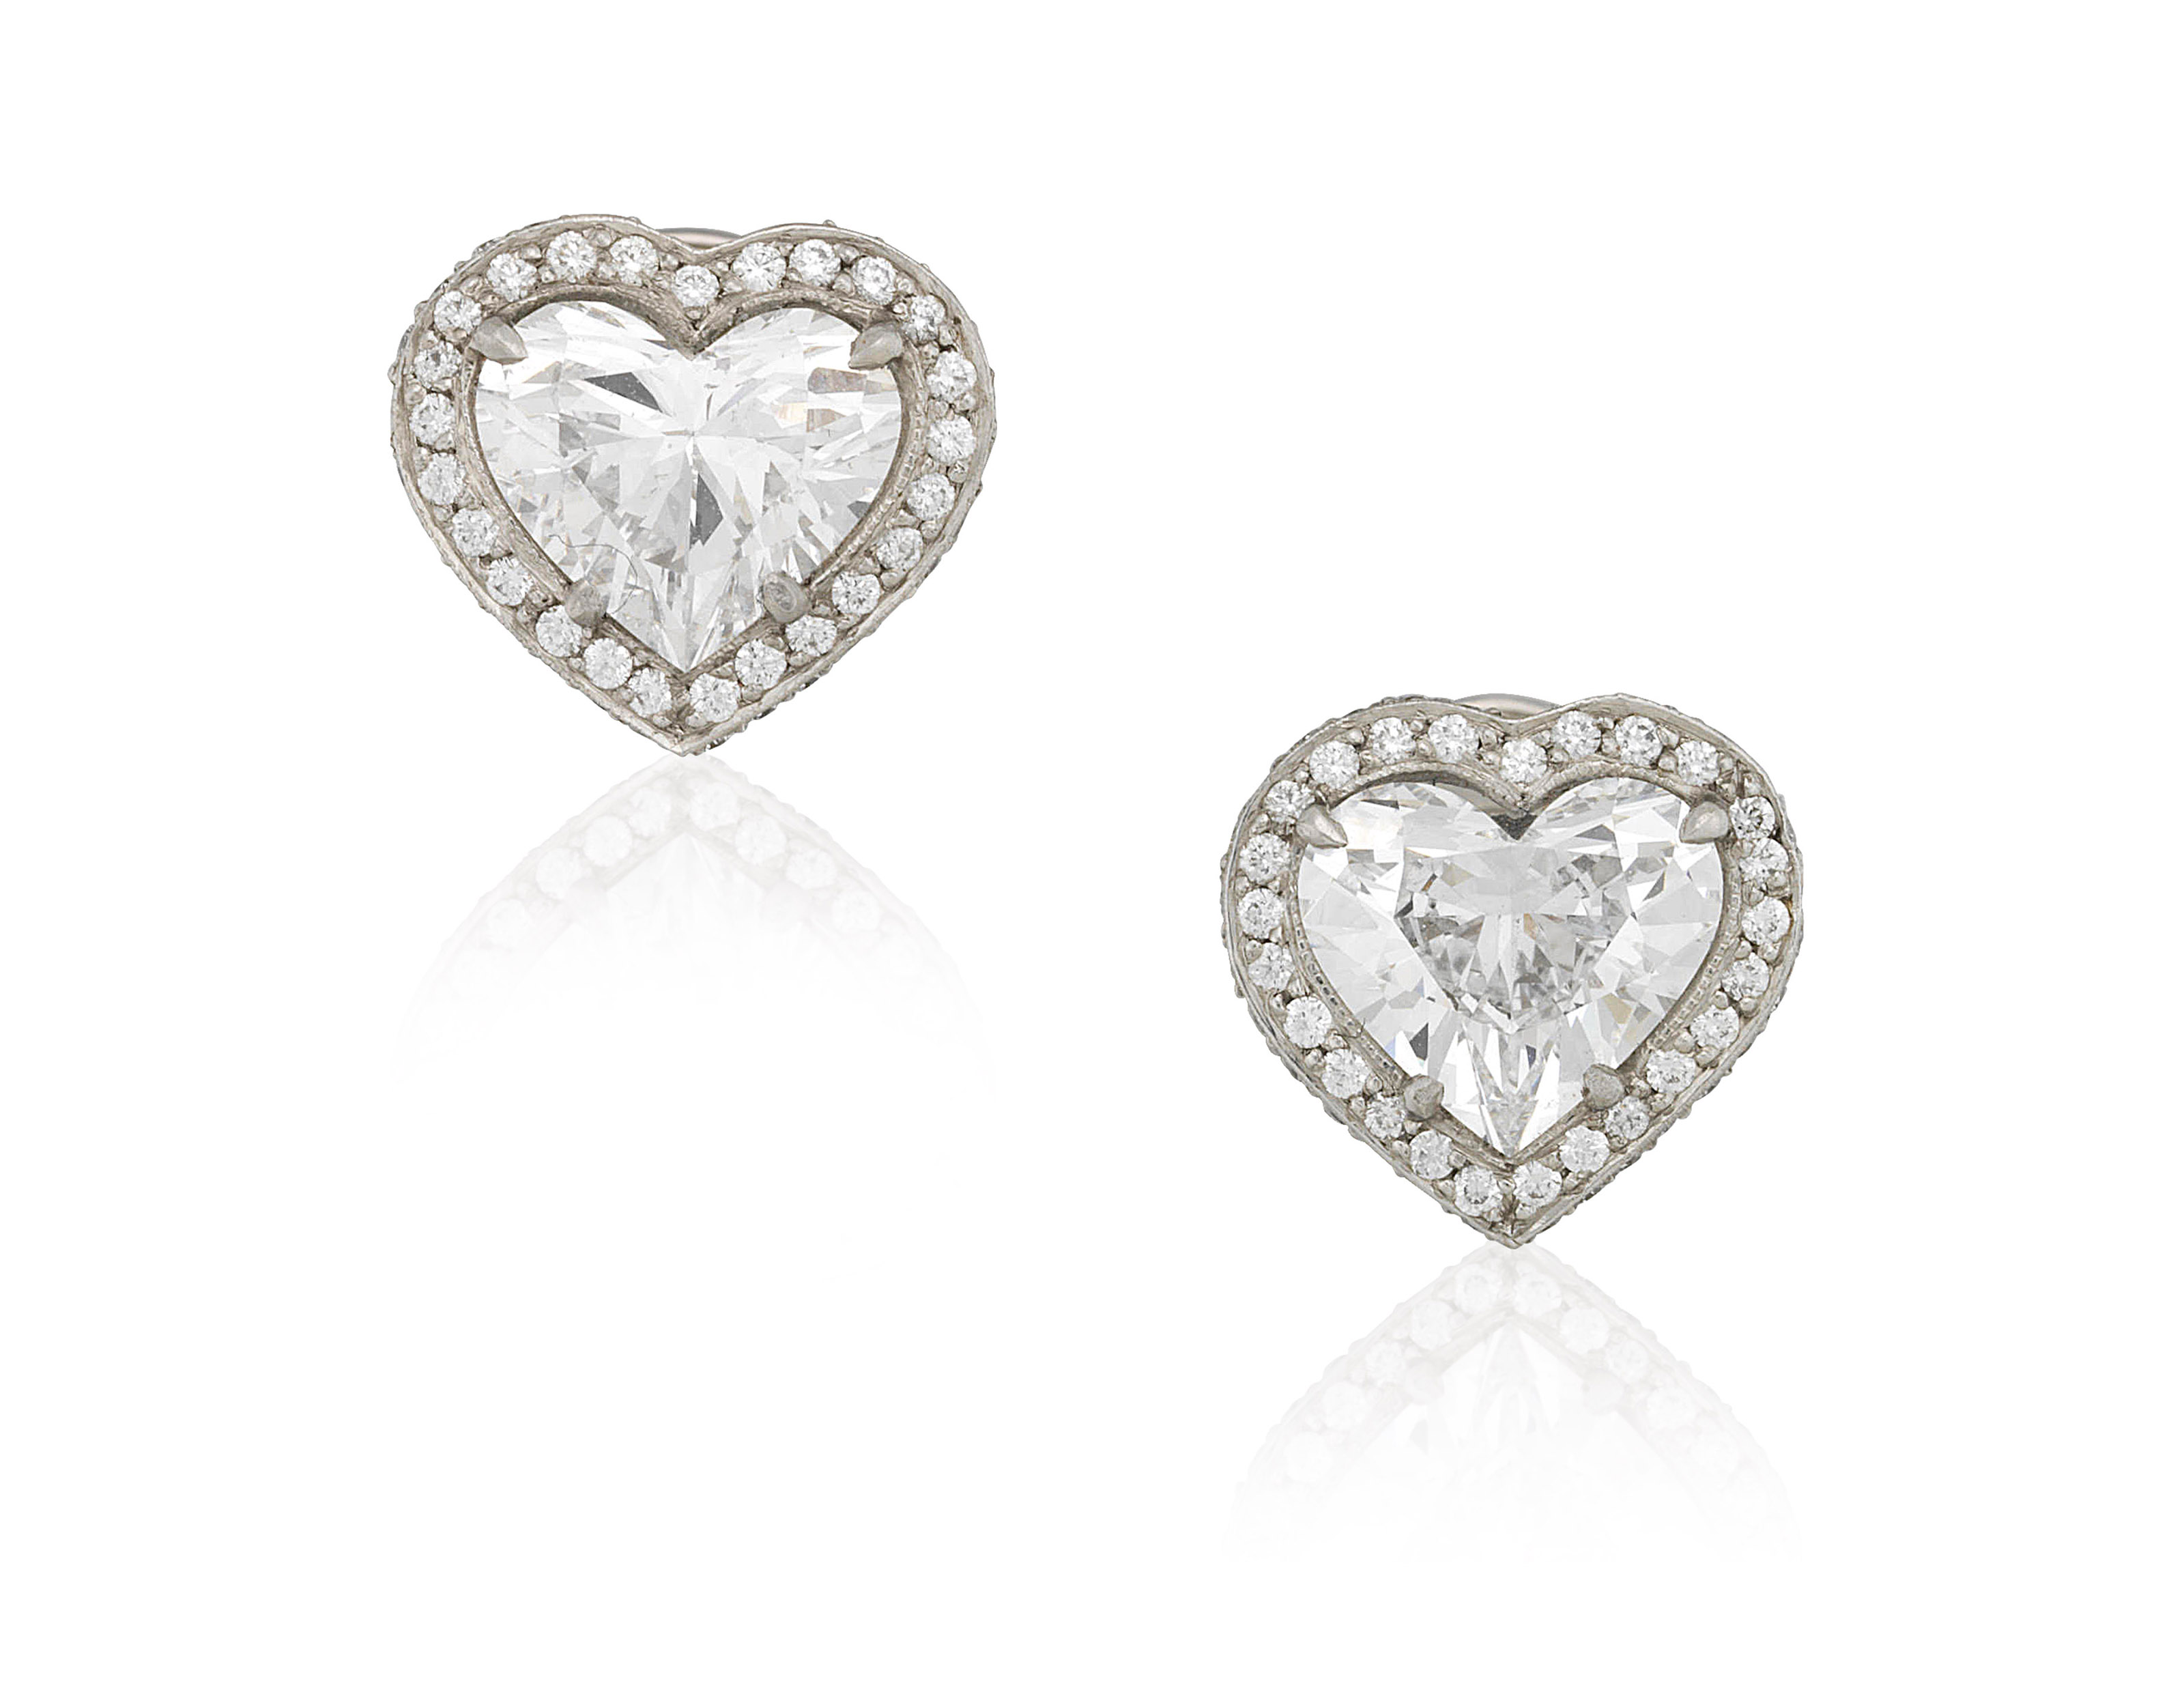 aler online earrings shaped ad plated silver small spargz stone stud for heart buy women product